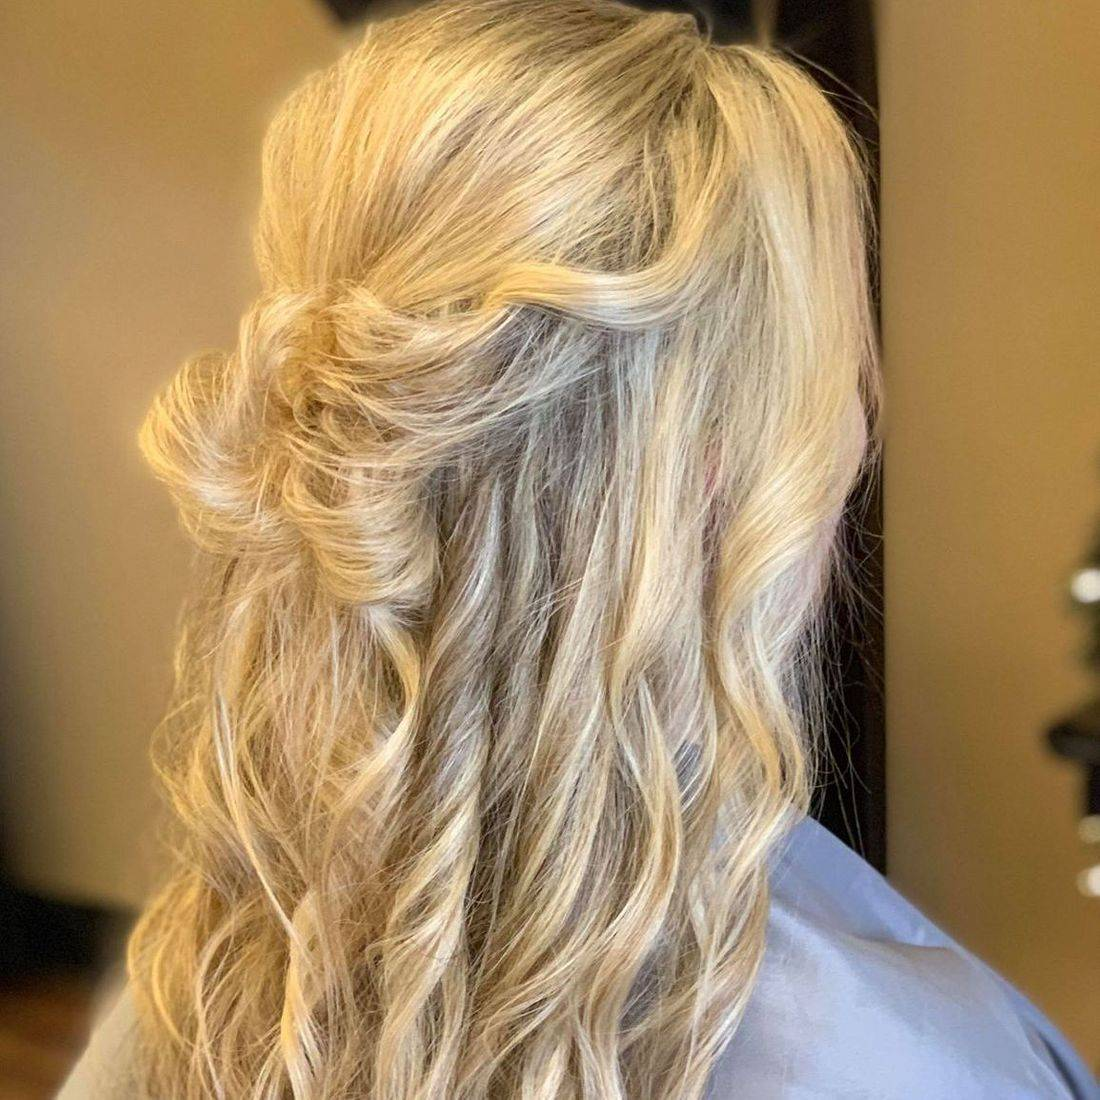 Updo Half-up wedding style